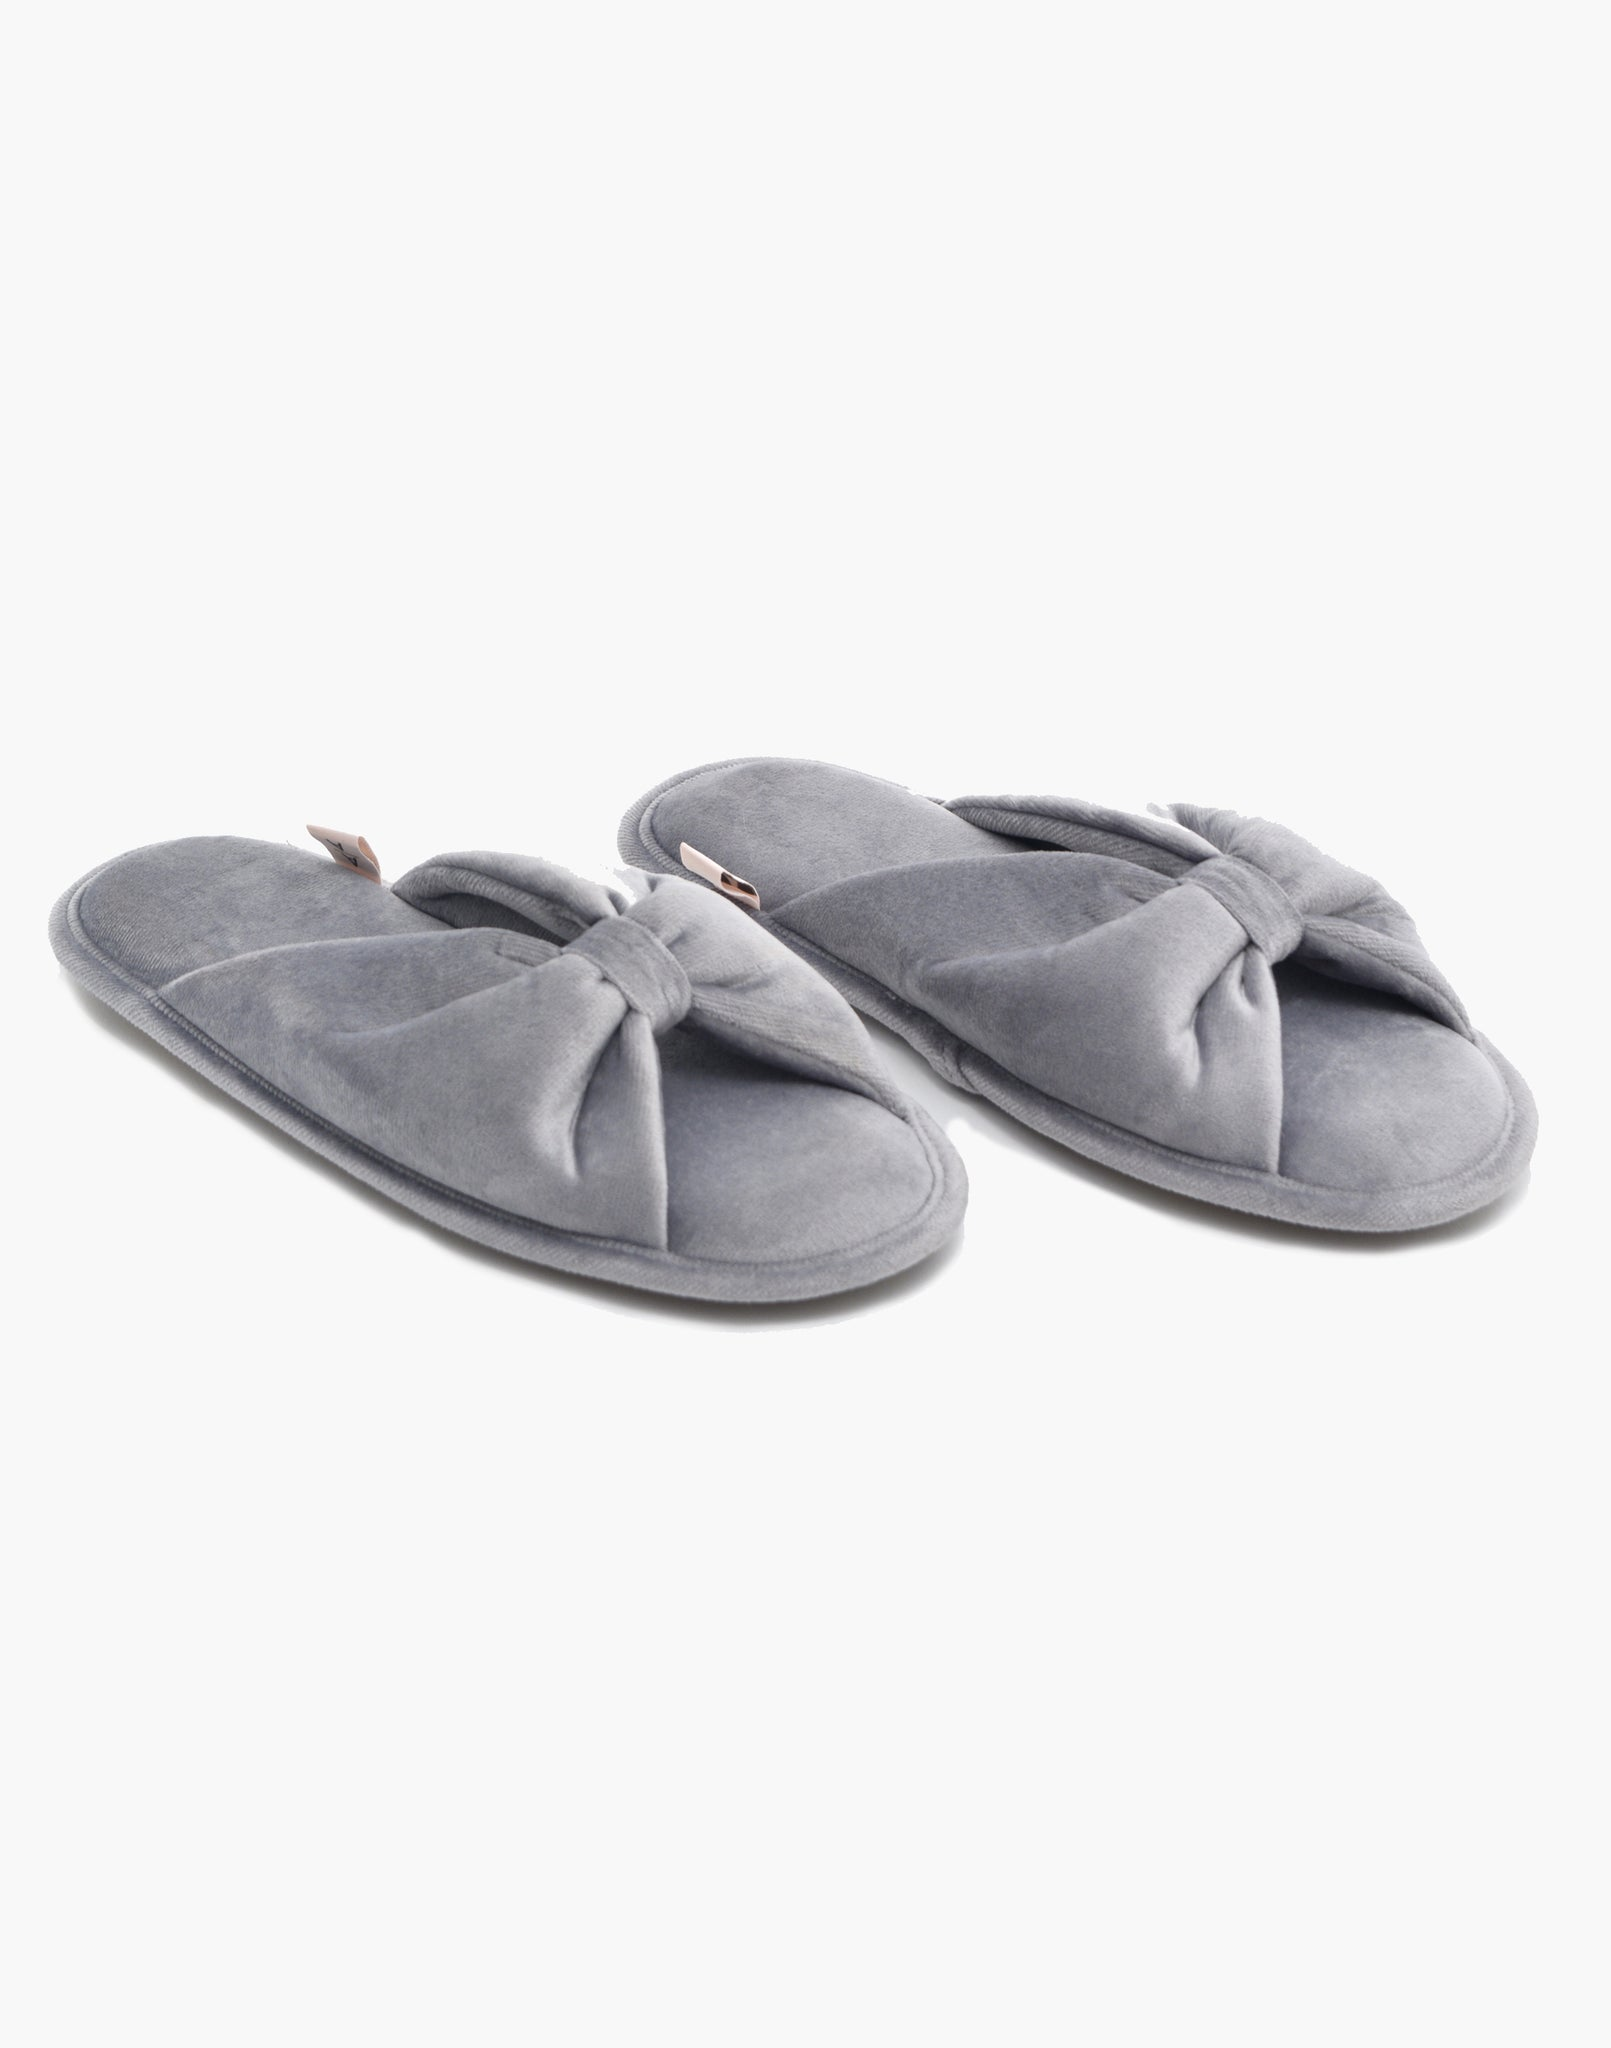 Spa Slide Slipper Grey